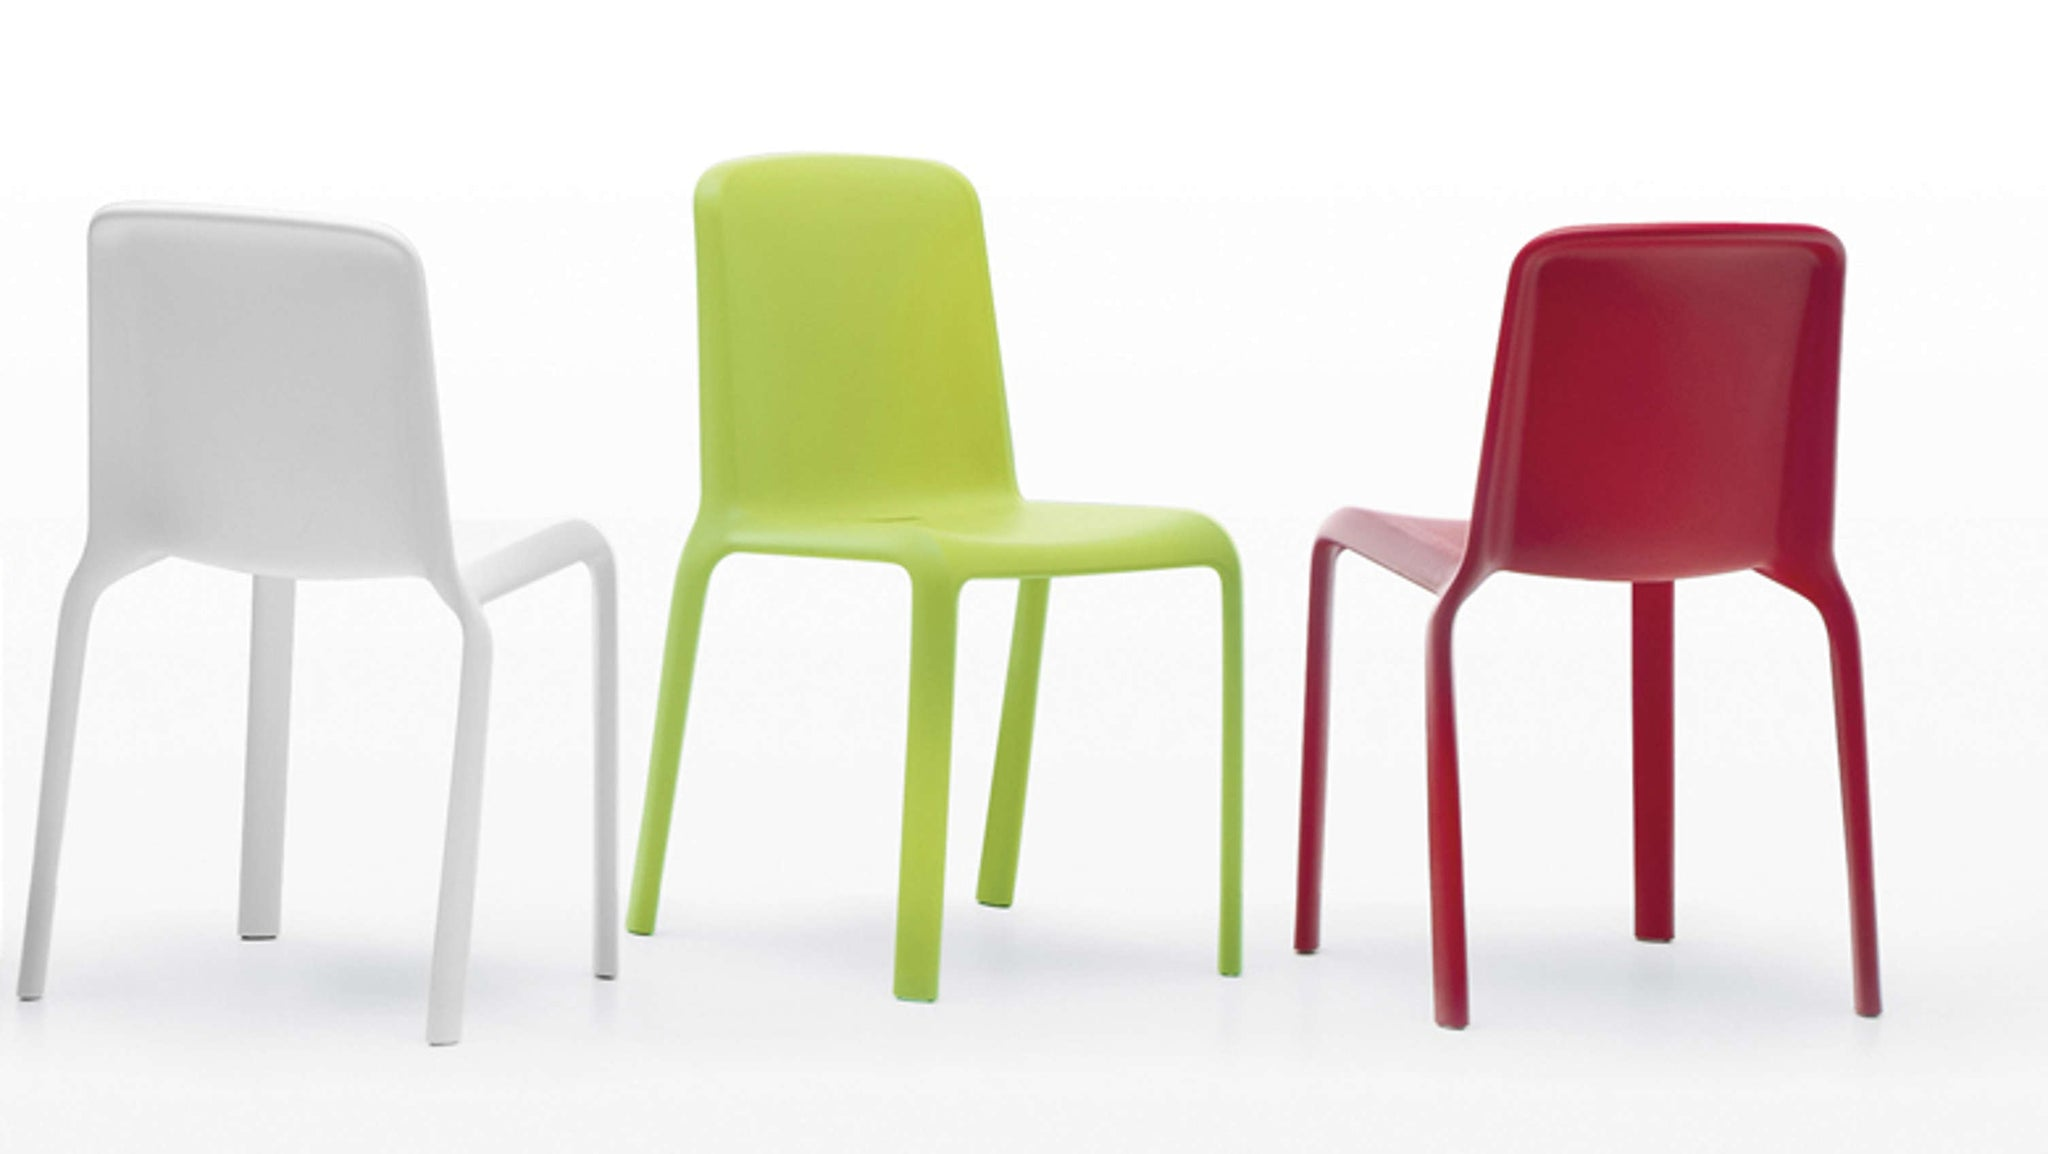 Coloured Plastic Chairs UK Delivery